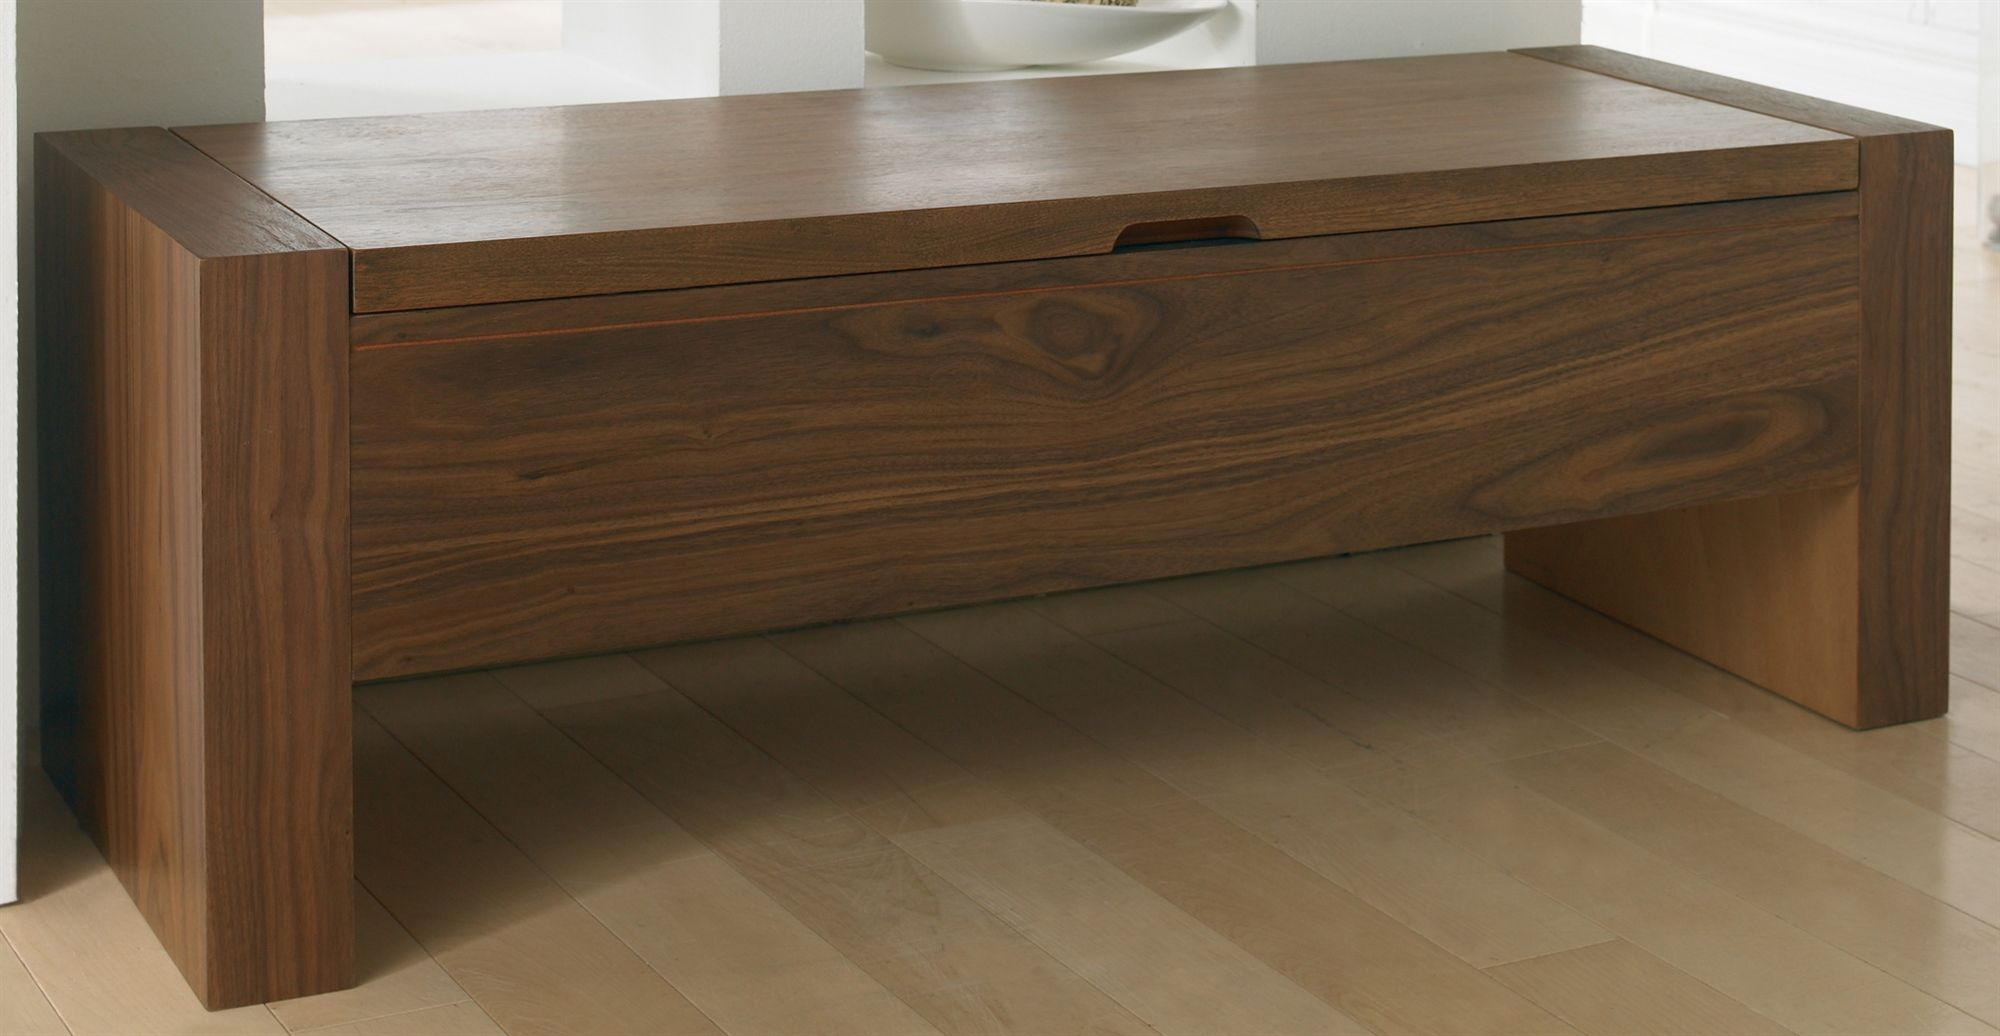 Picture Of Sunpan Imports Carlyle Rectangular Lift Lid Storage Bench In  Walnut Finish (spn 50254) (Indoor Benches)